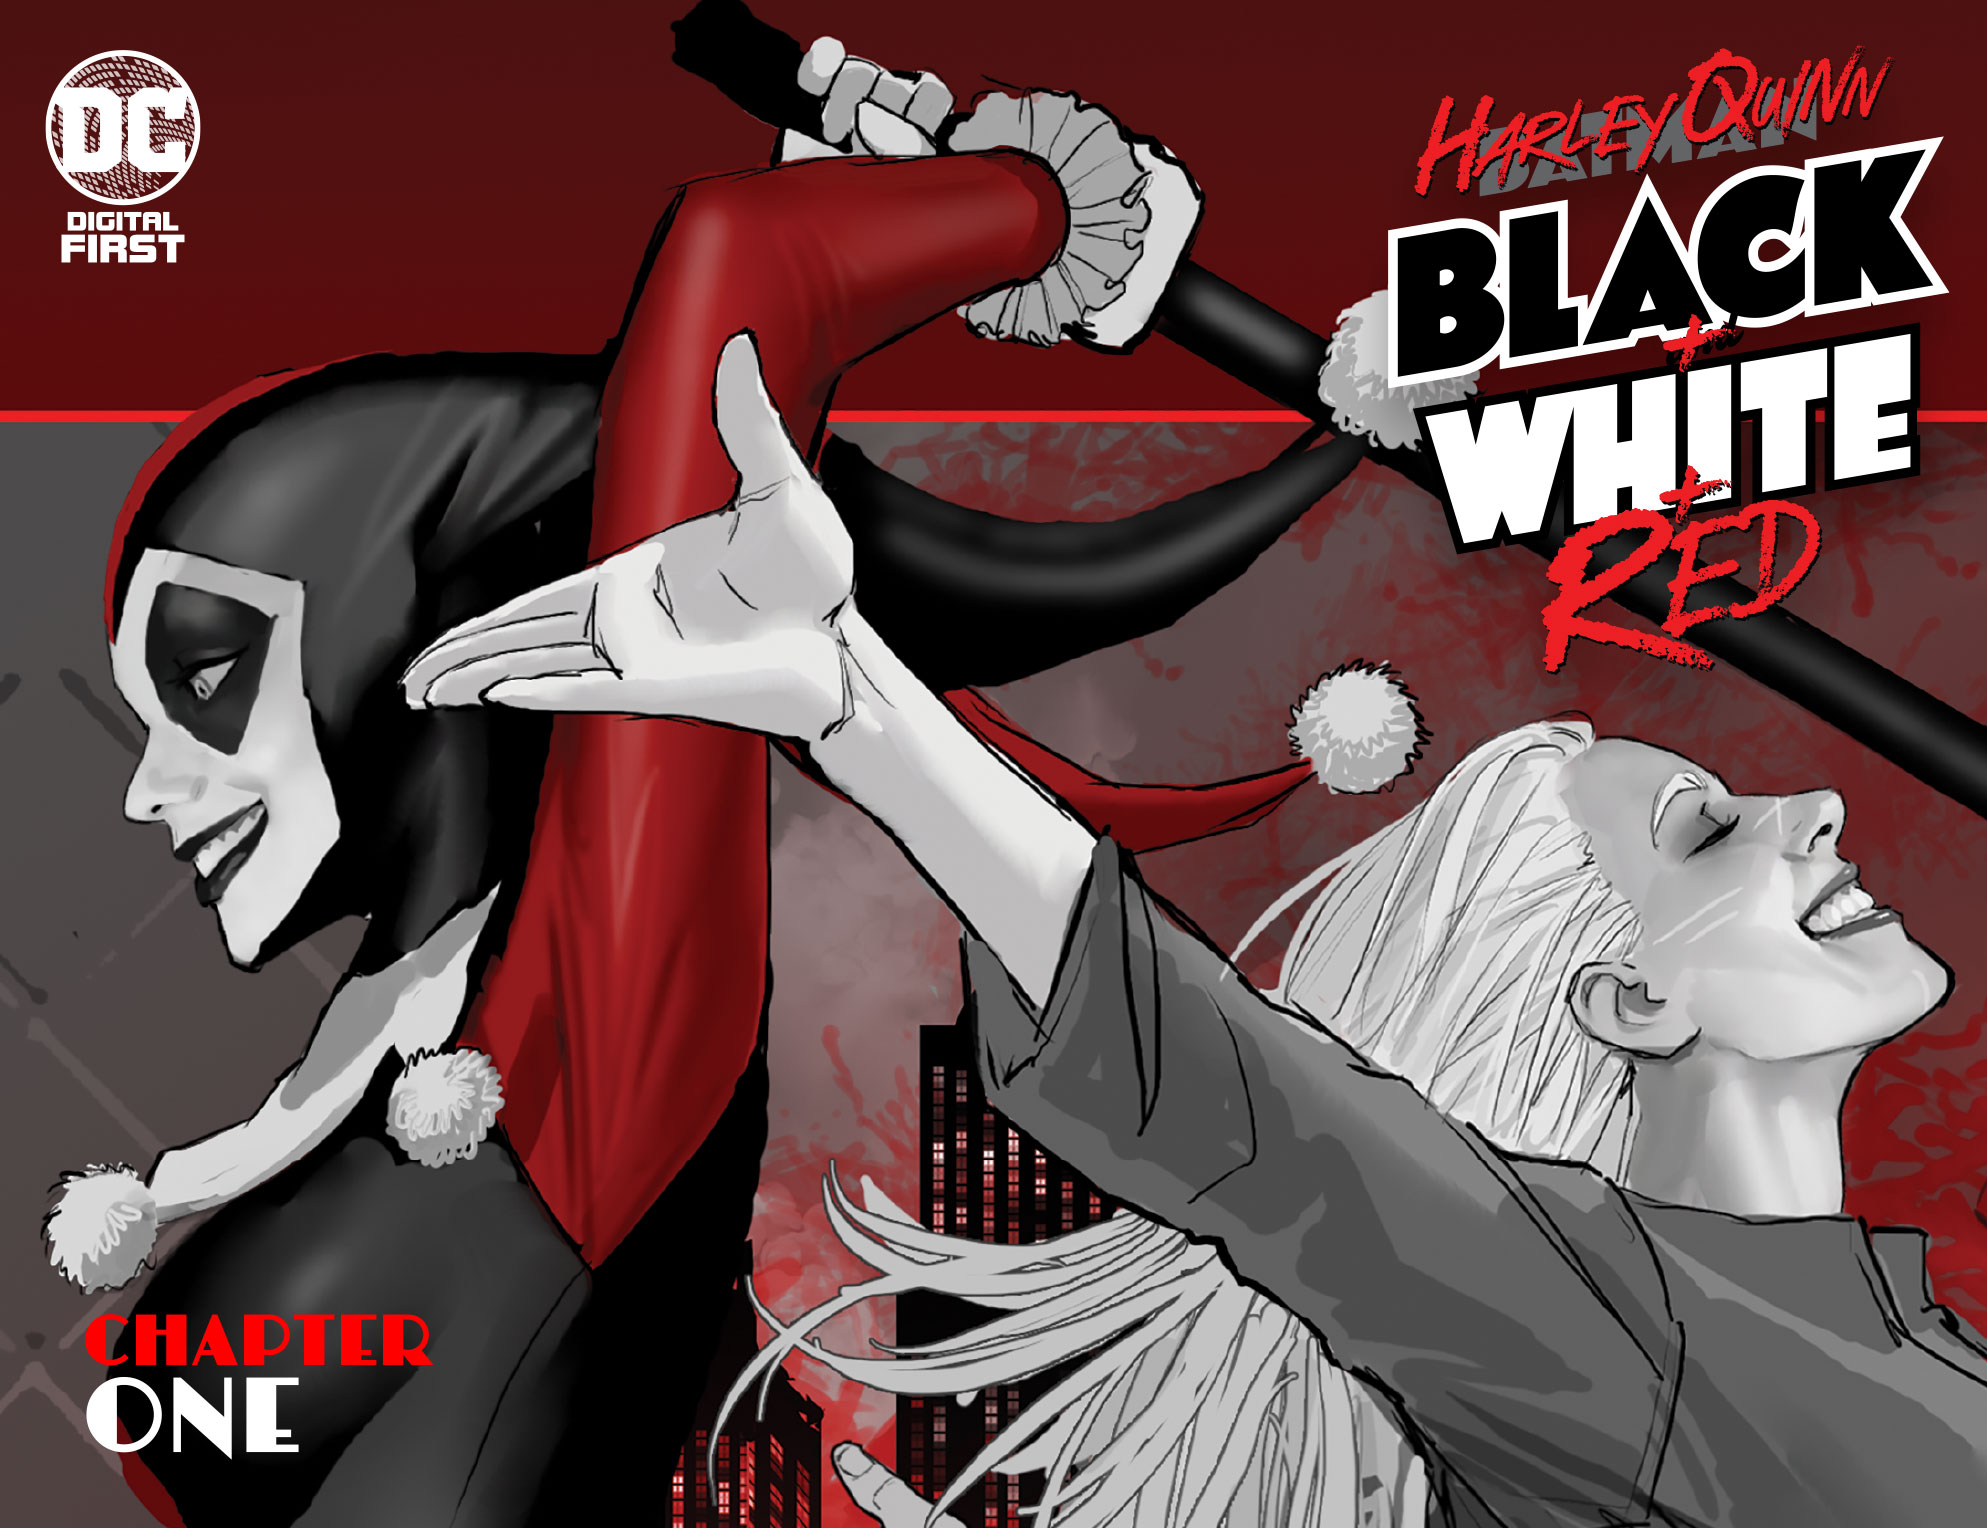 HQBWR_Chapter_1_cover